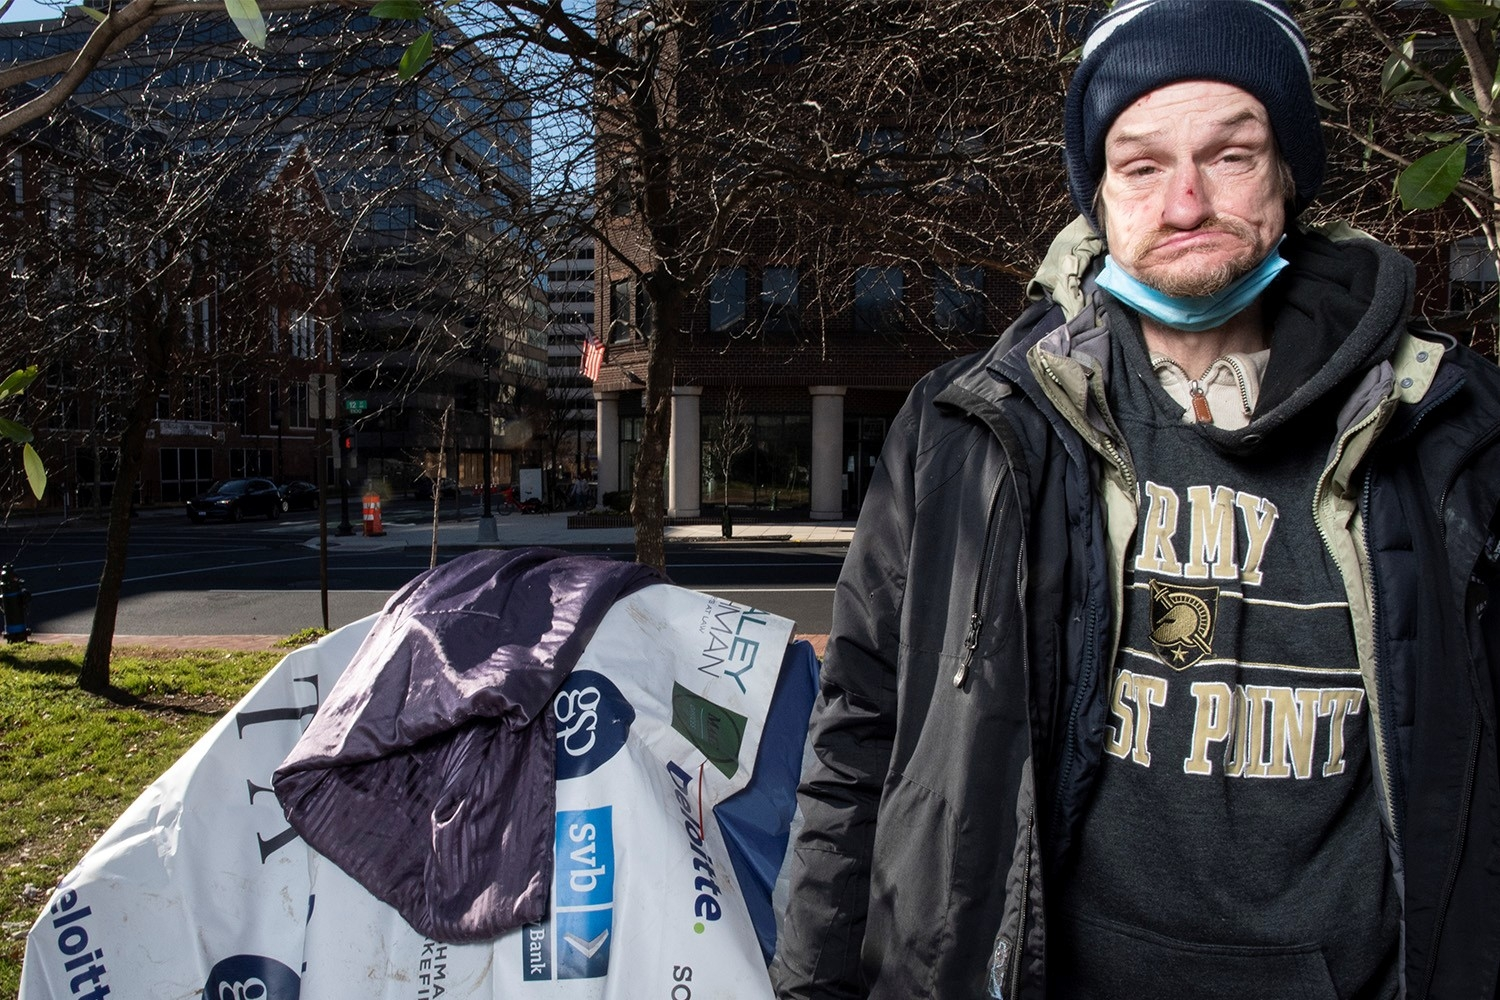 A homeless man stands in a park in downtown Washington D.C. The white middle-aged man has a blonde goatee and is wearing a navy winter hat, a blue surgical mask beneath his chin, an Army West Point gray sweartshirt and several layers of winter jackets.